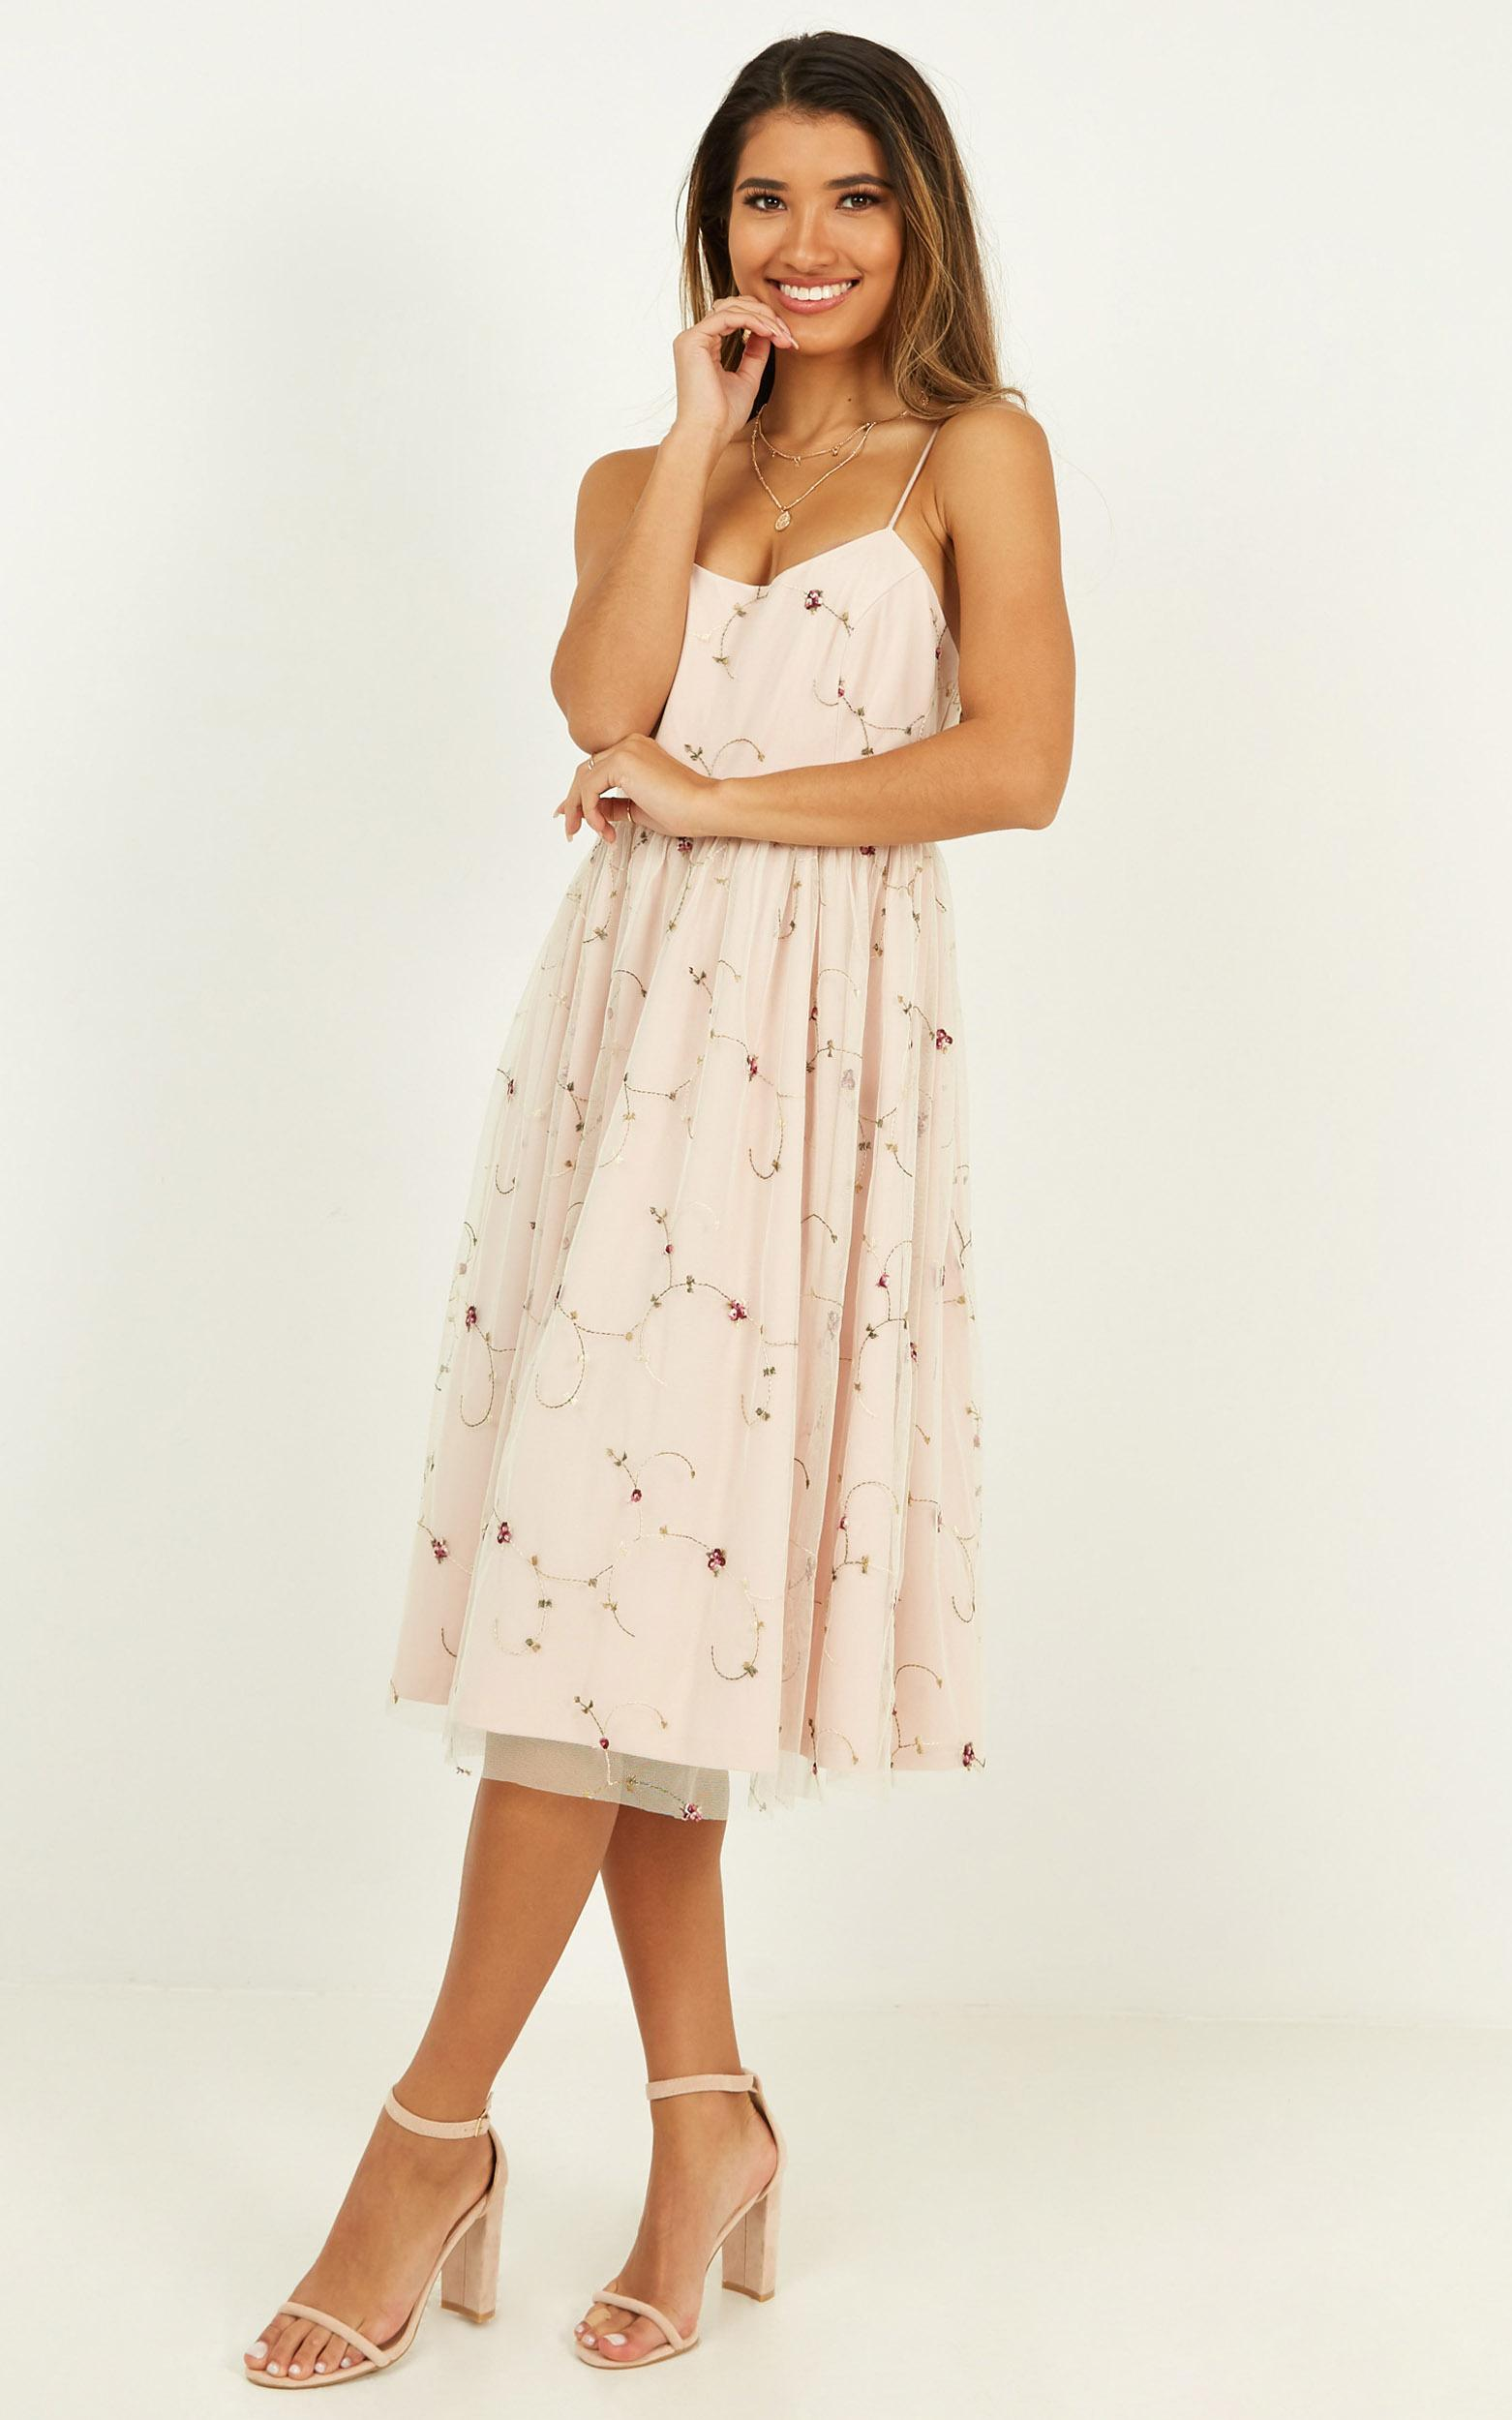 You Never Knew Dress in nude - 20 (XXXXL), Beige, hi-res image number null